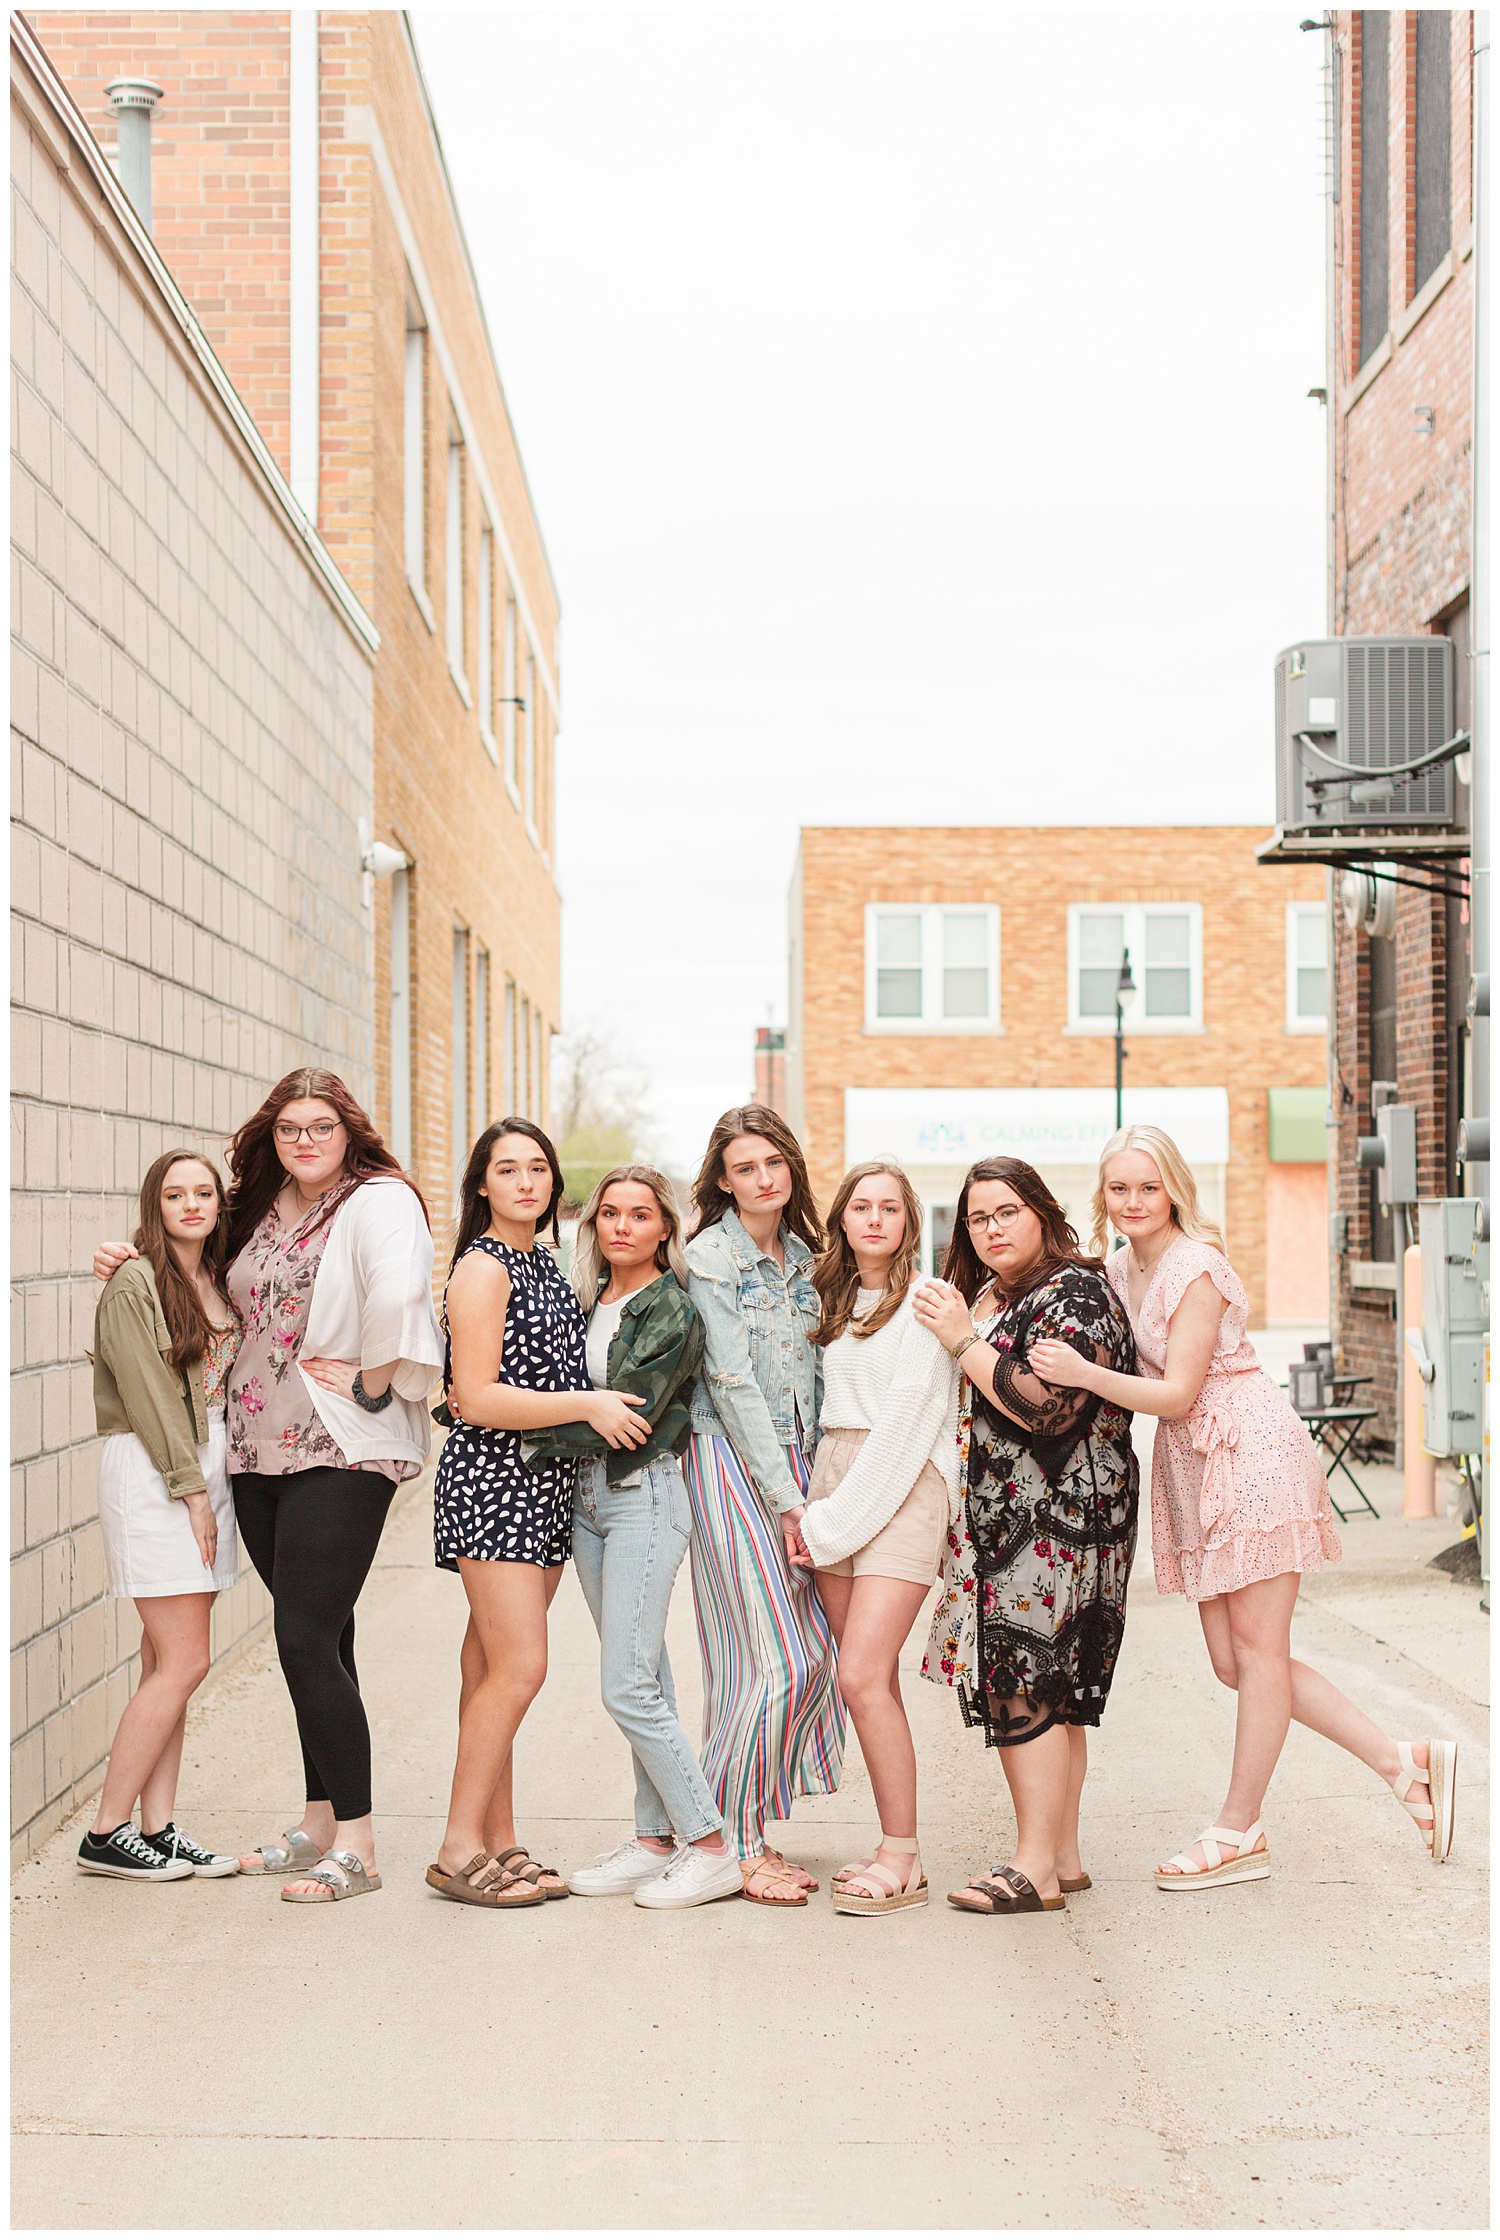 2022 CBS Senior Spokesmodel Team pose downtown Algona, Iowa. Styled in outfits from Cultivate Boutique | CB Studio